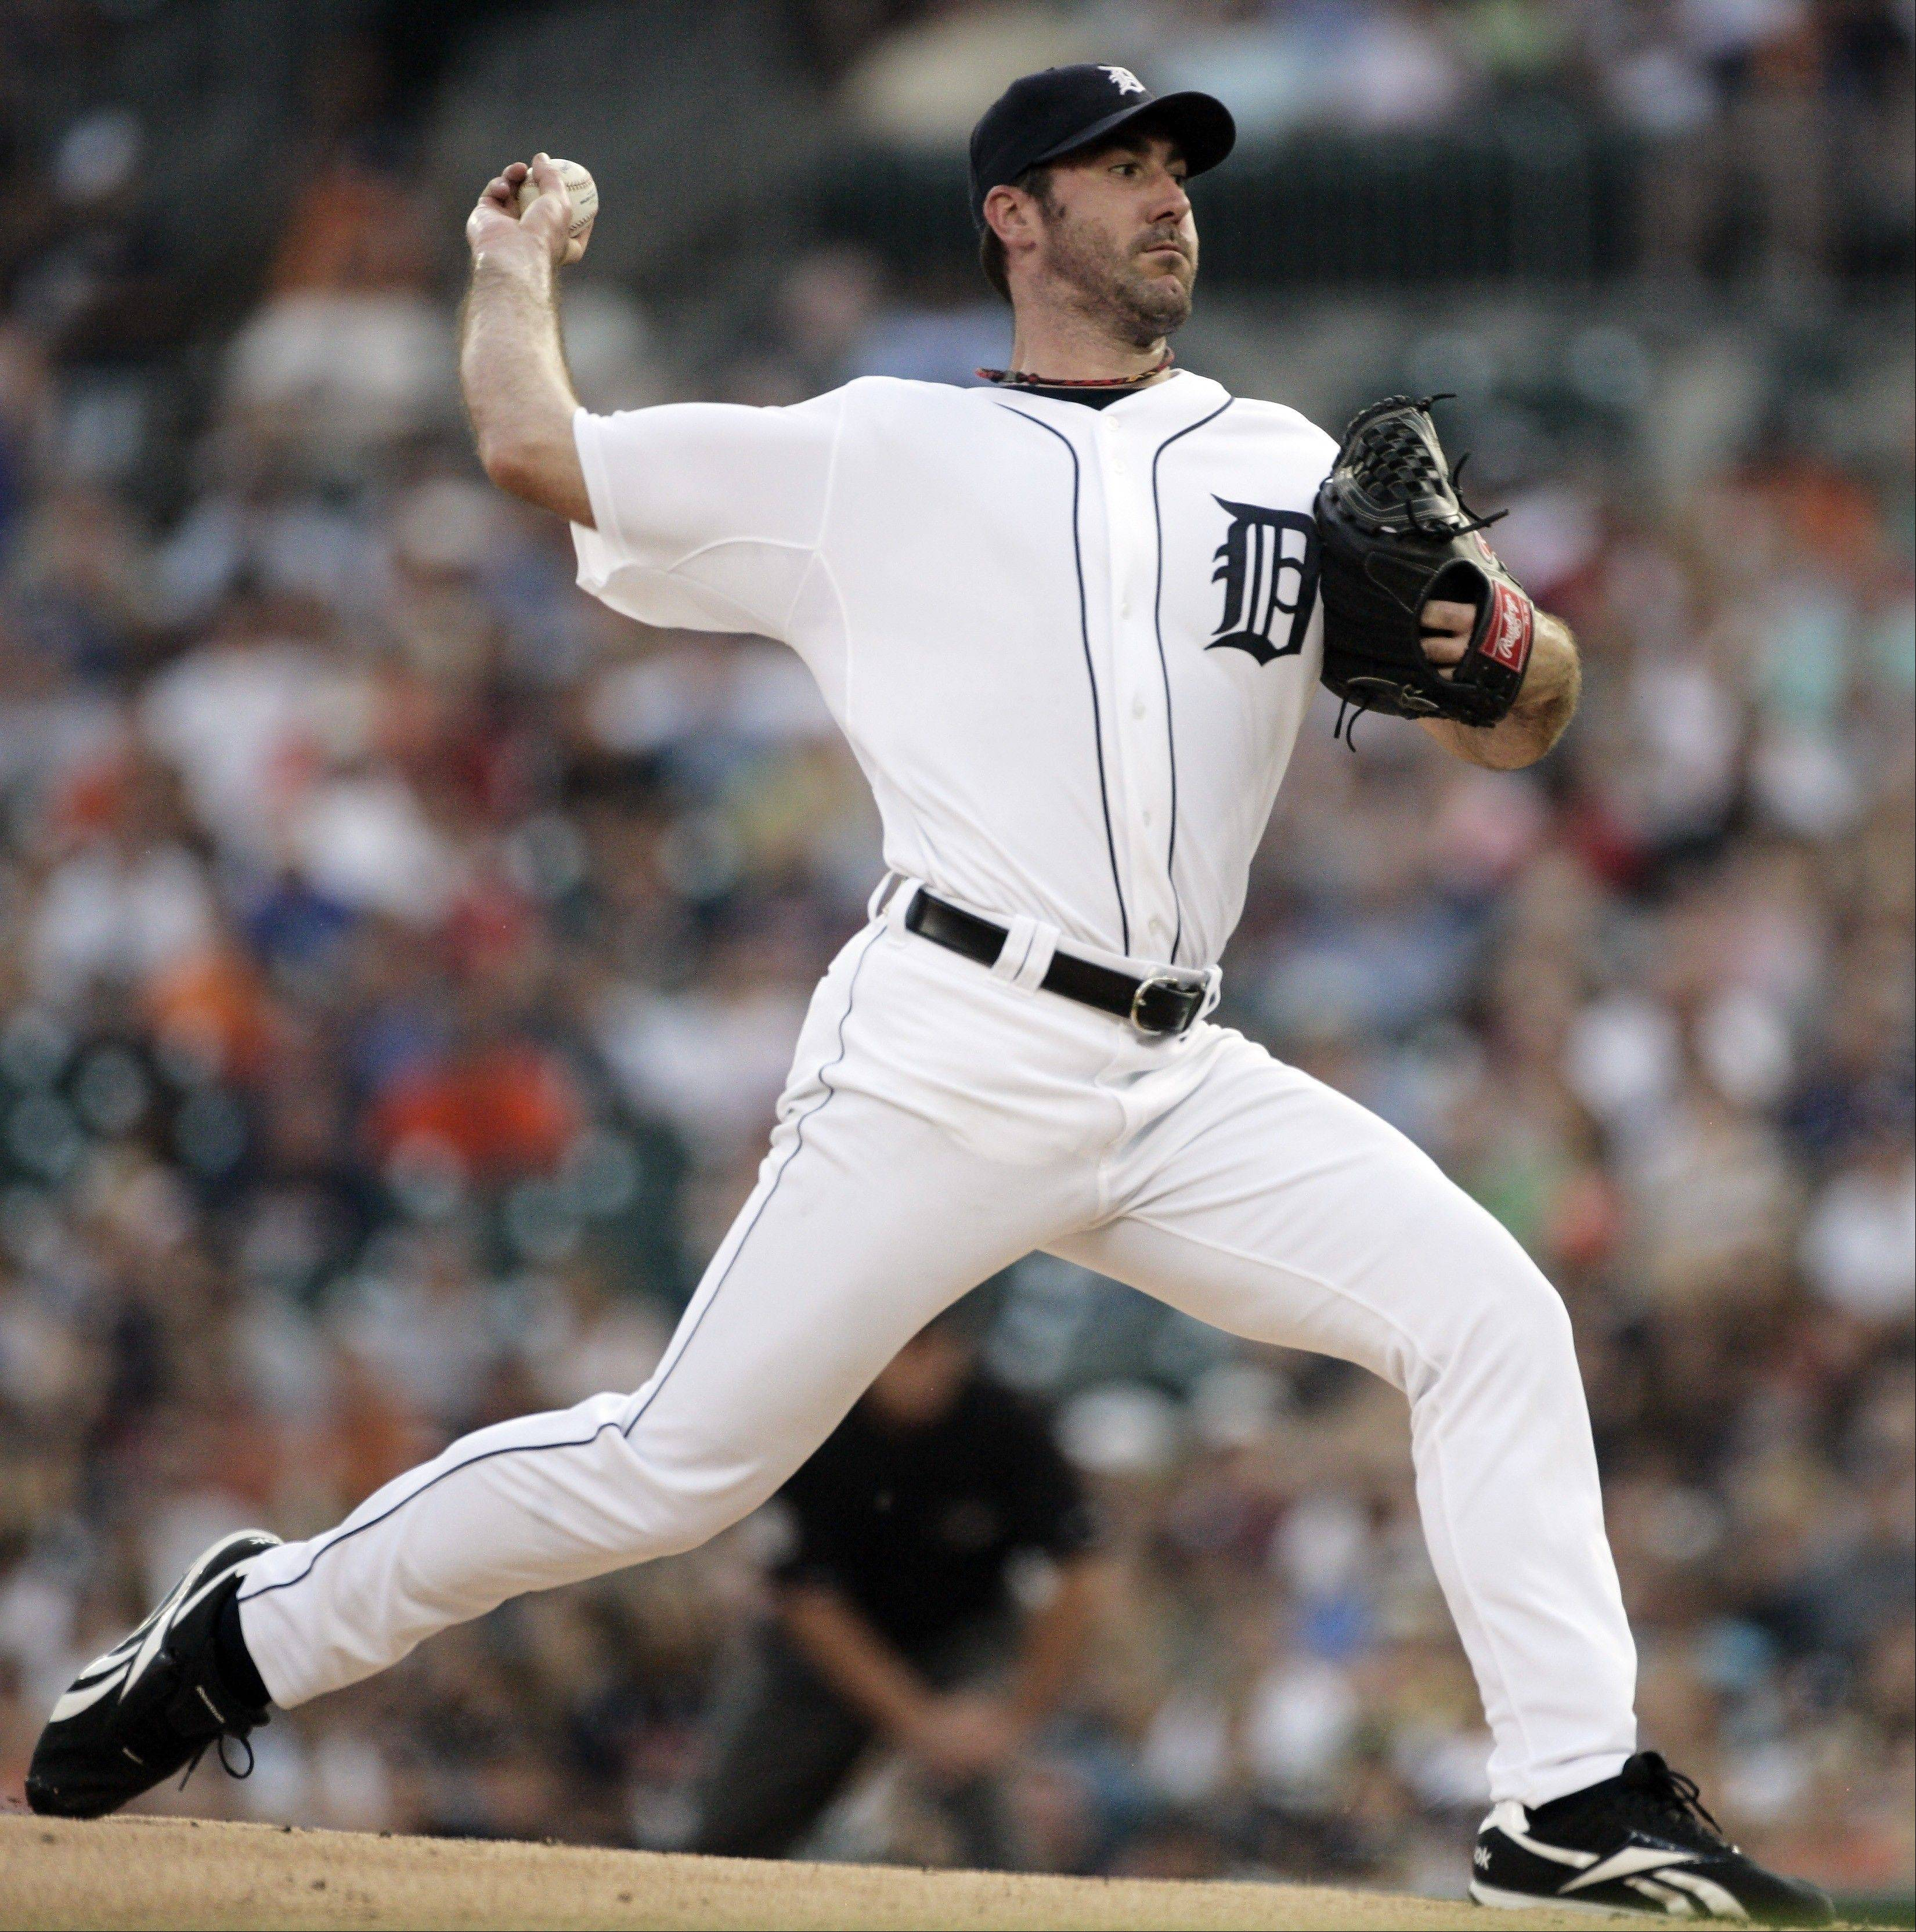 Detroit Tigers starter Justin Verlander was masterful against the White Sox Friday night helping the Tigers expand their lead to 6� games over the Sox in the AL Central.